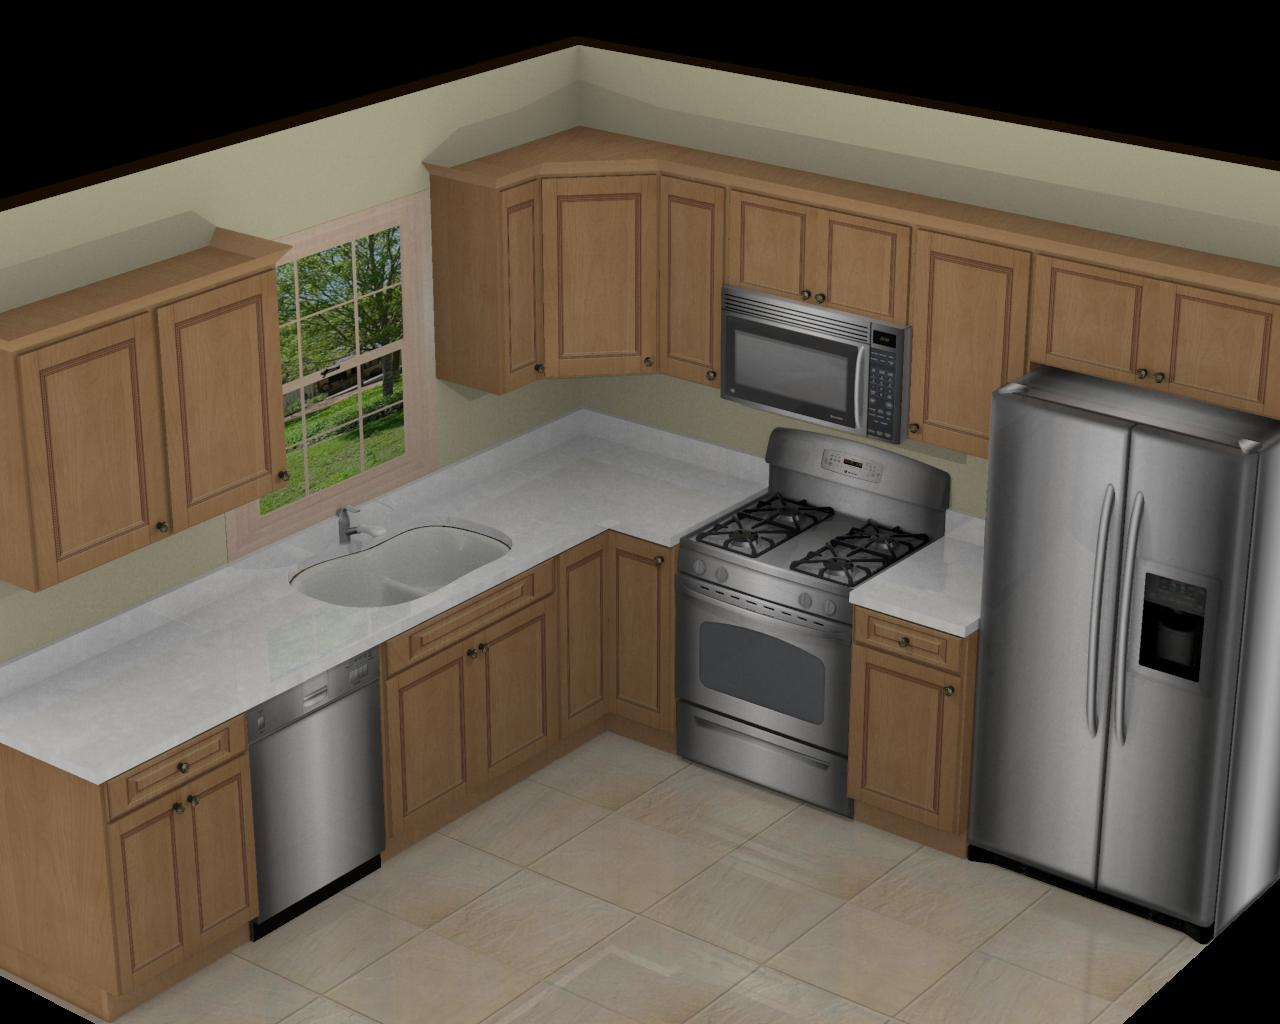 Foundation dezin decor 3d kitchen model design for Kitchen remodel